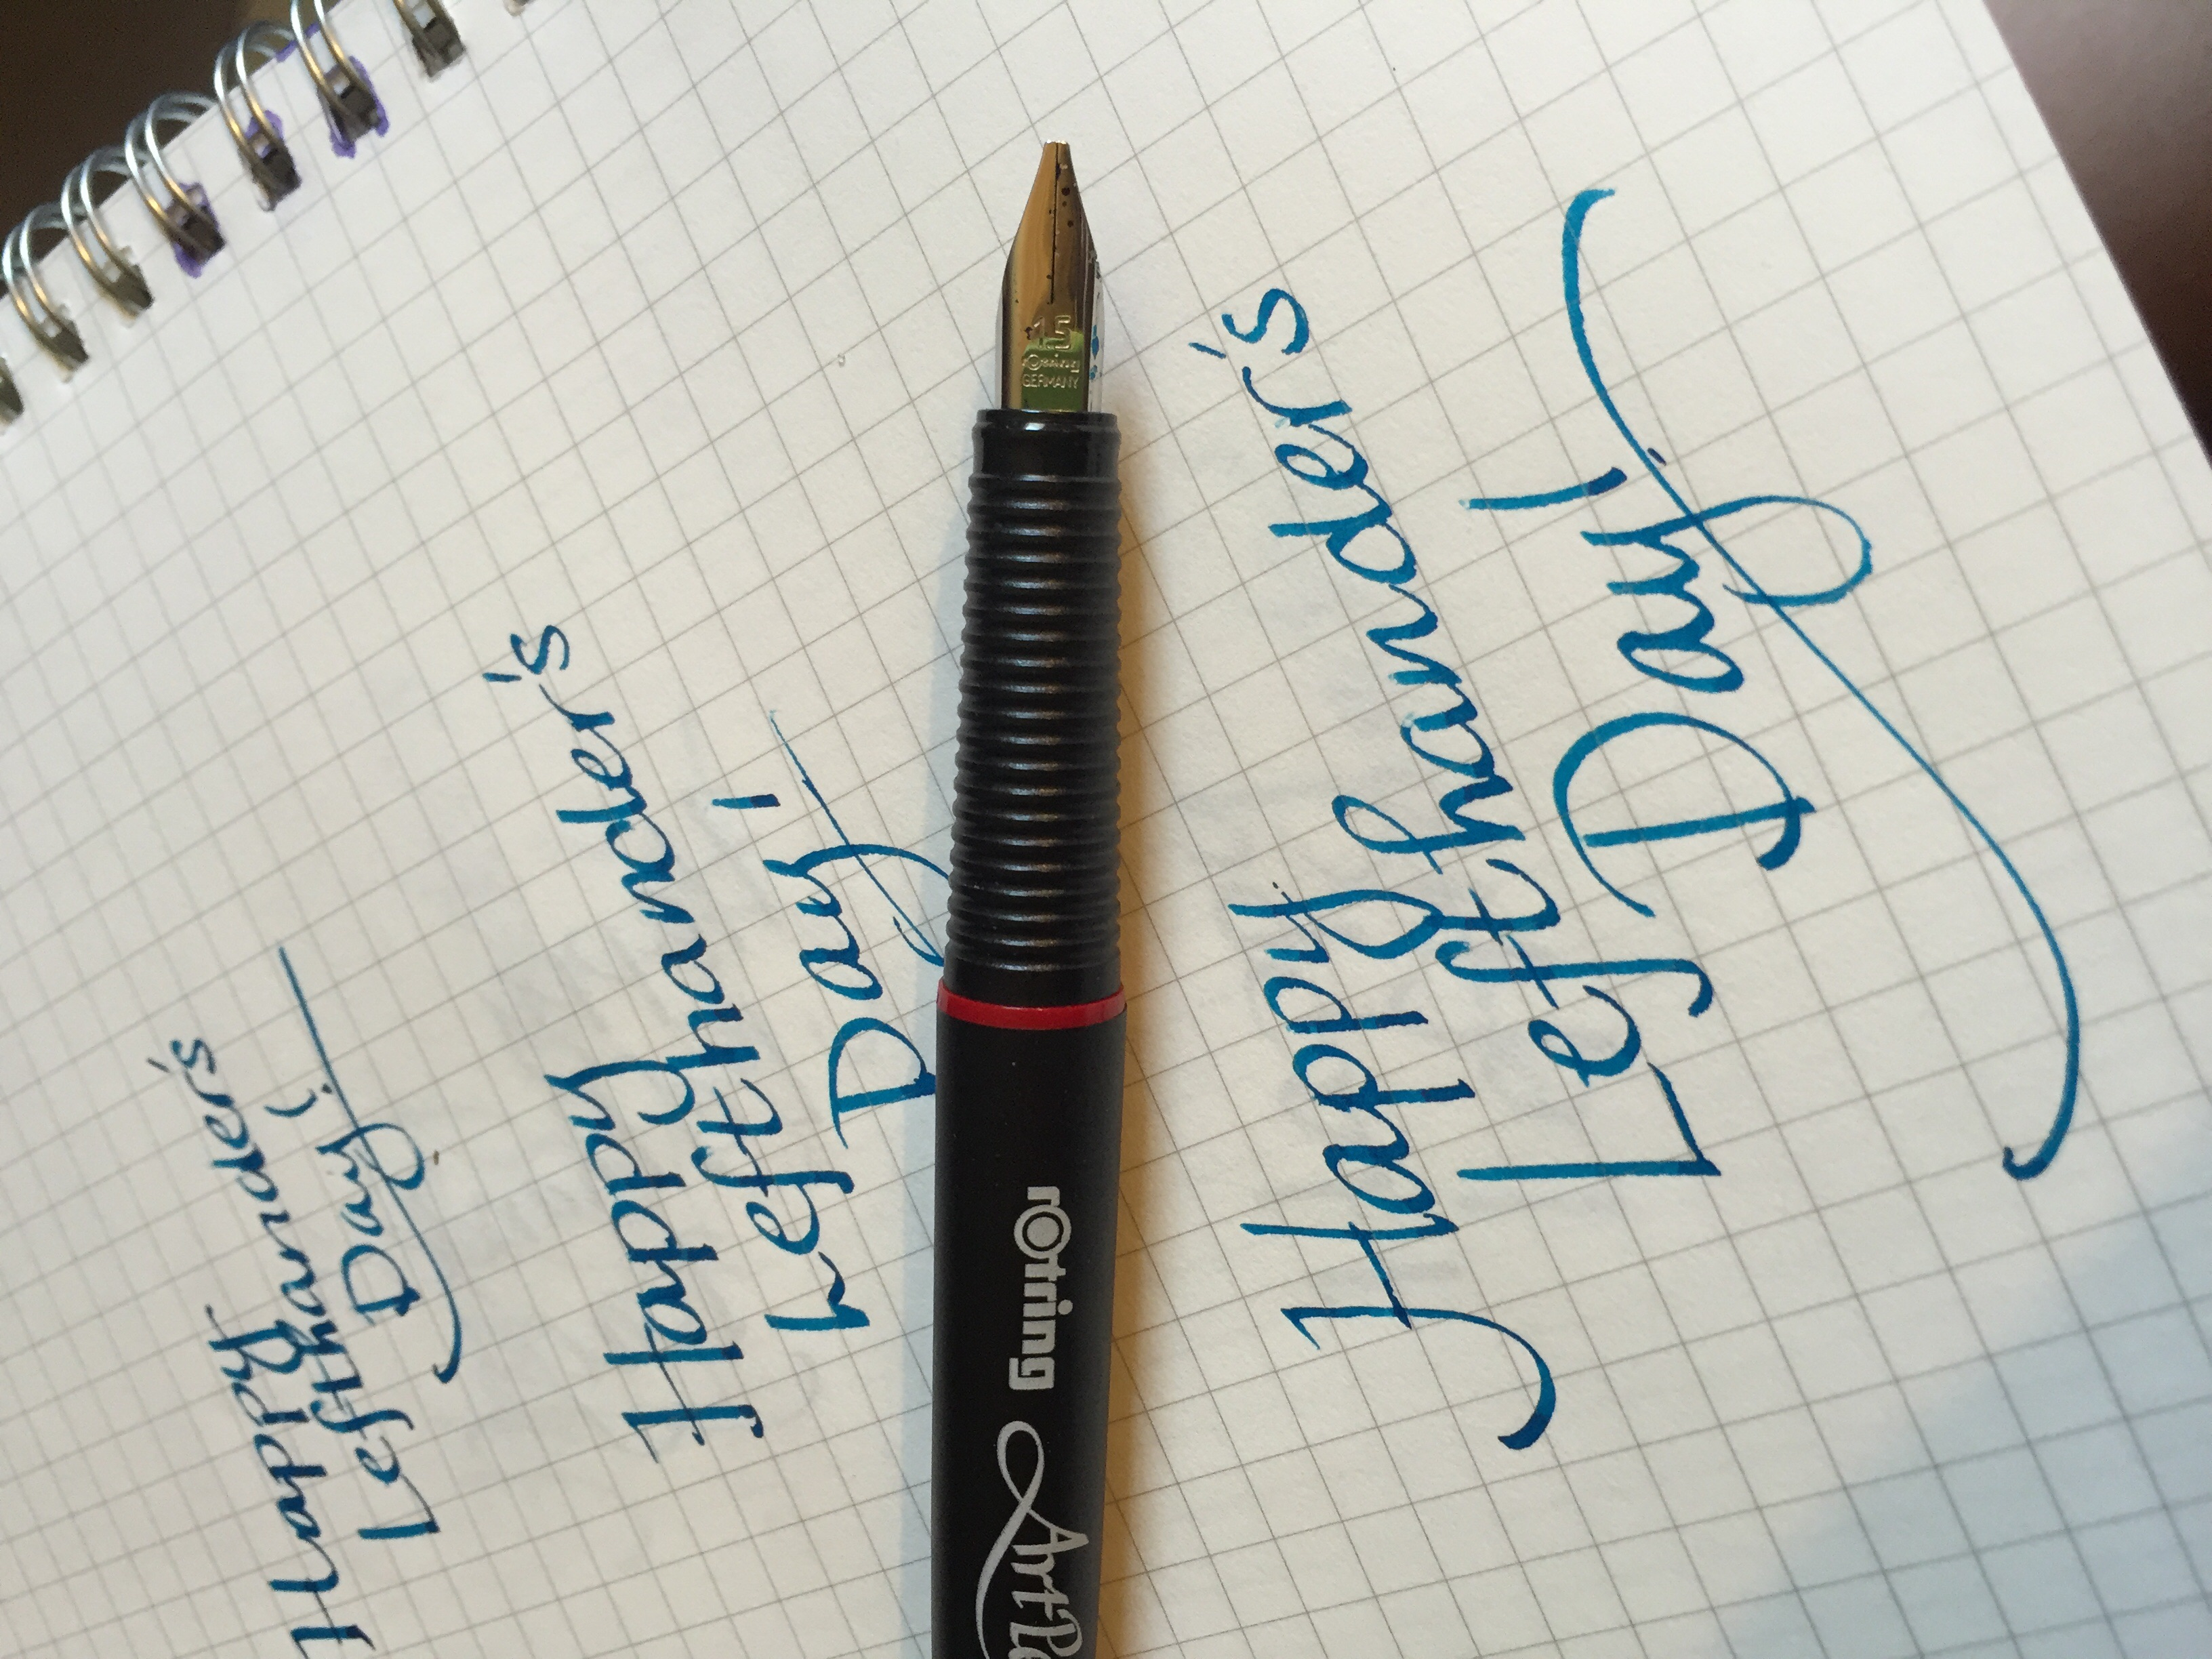 Lefthander's Day with Rotring ArtPen